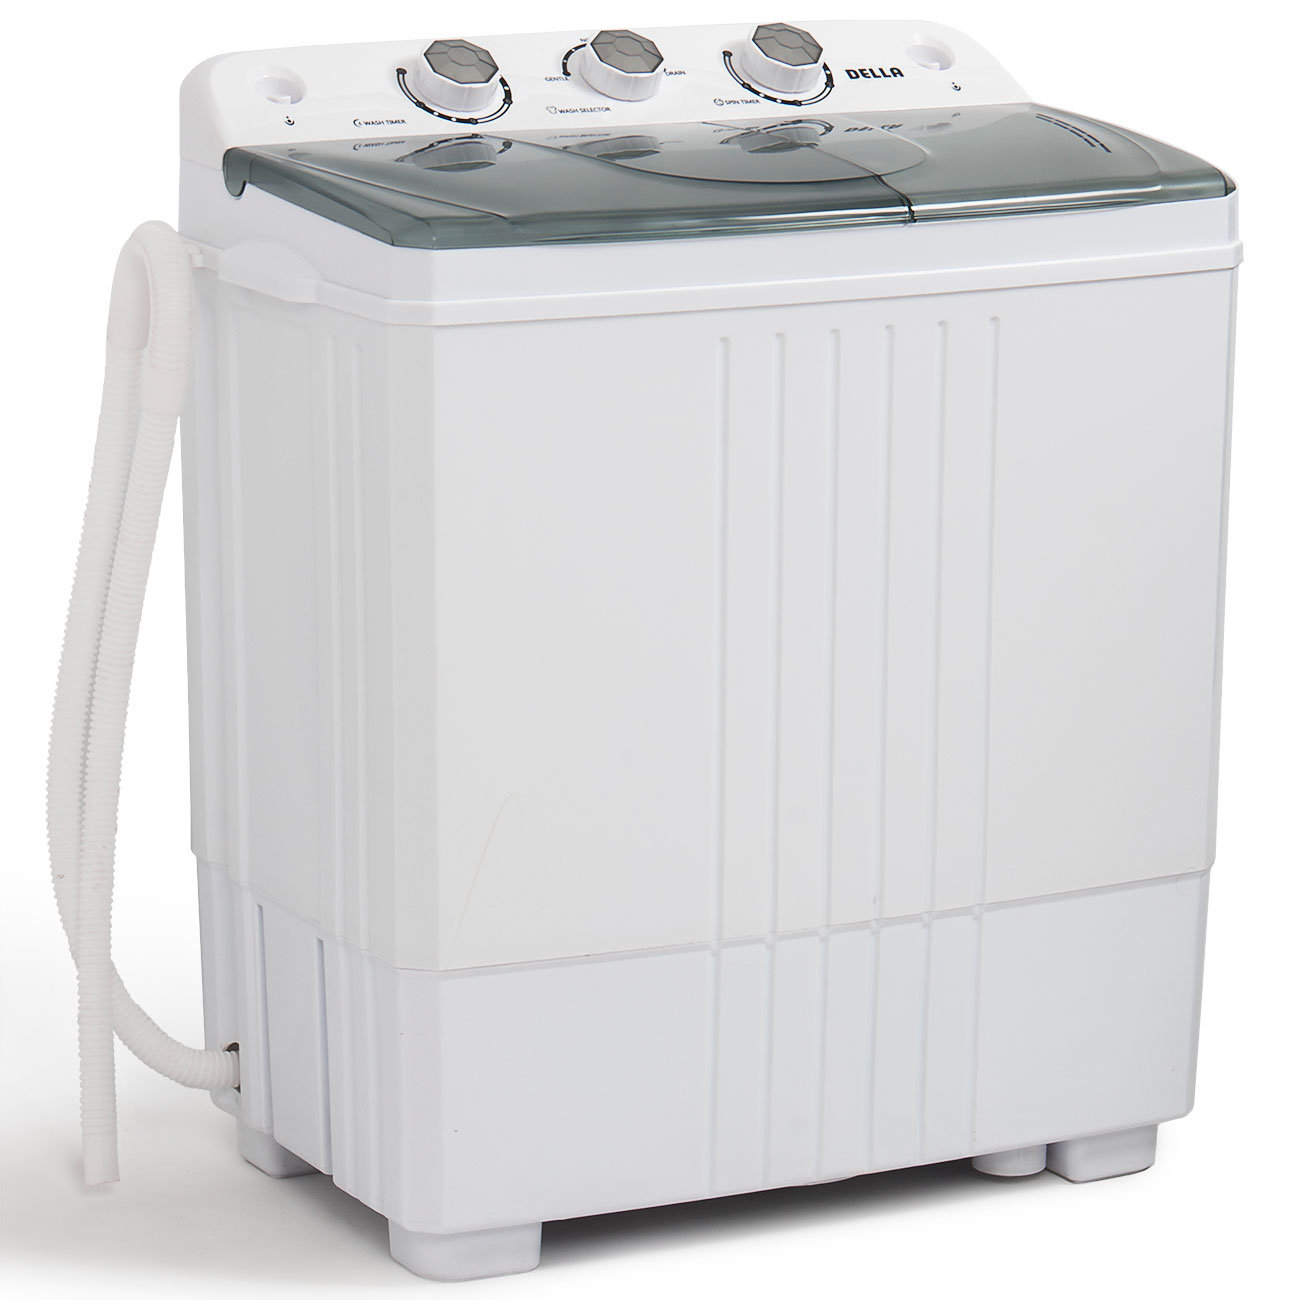 Portable Washer And Dryers For Apartments